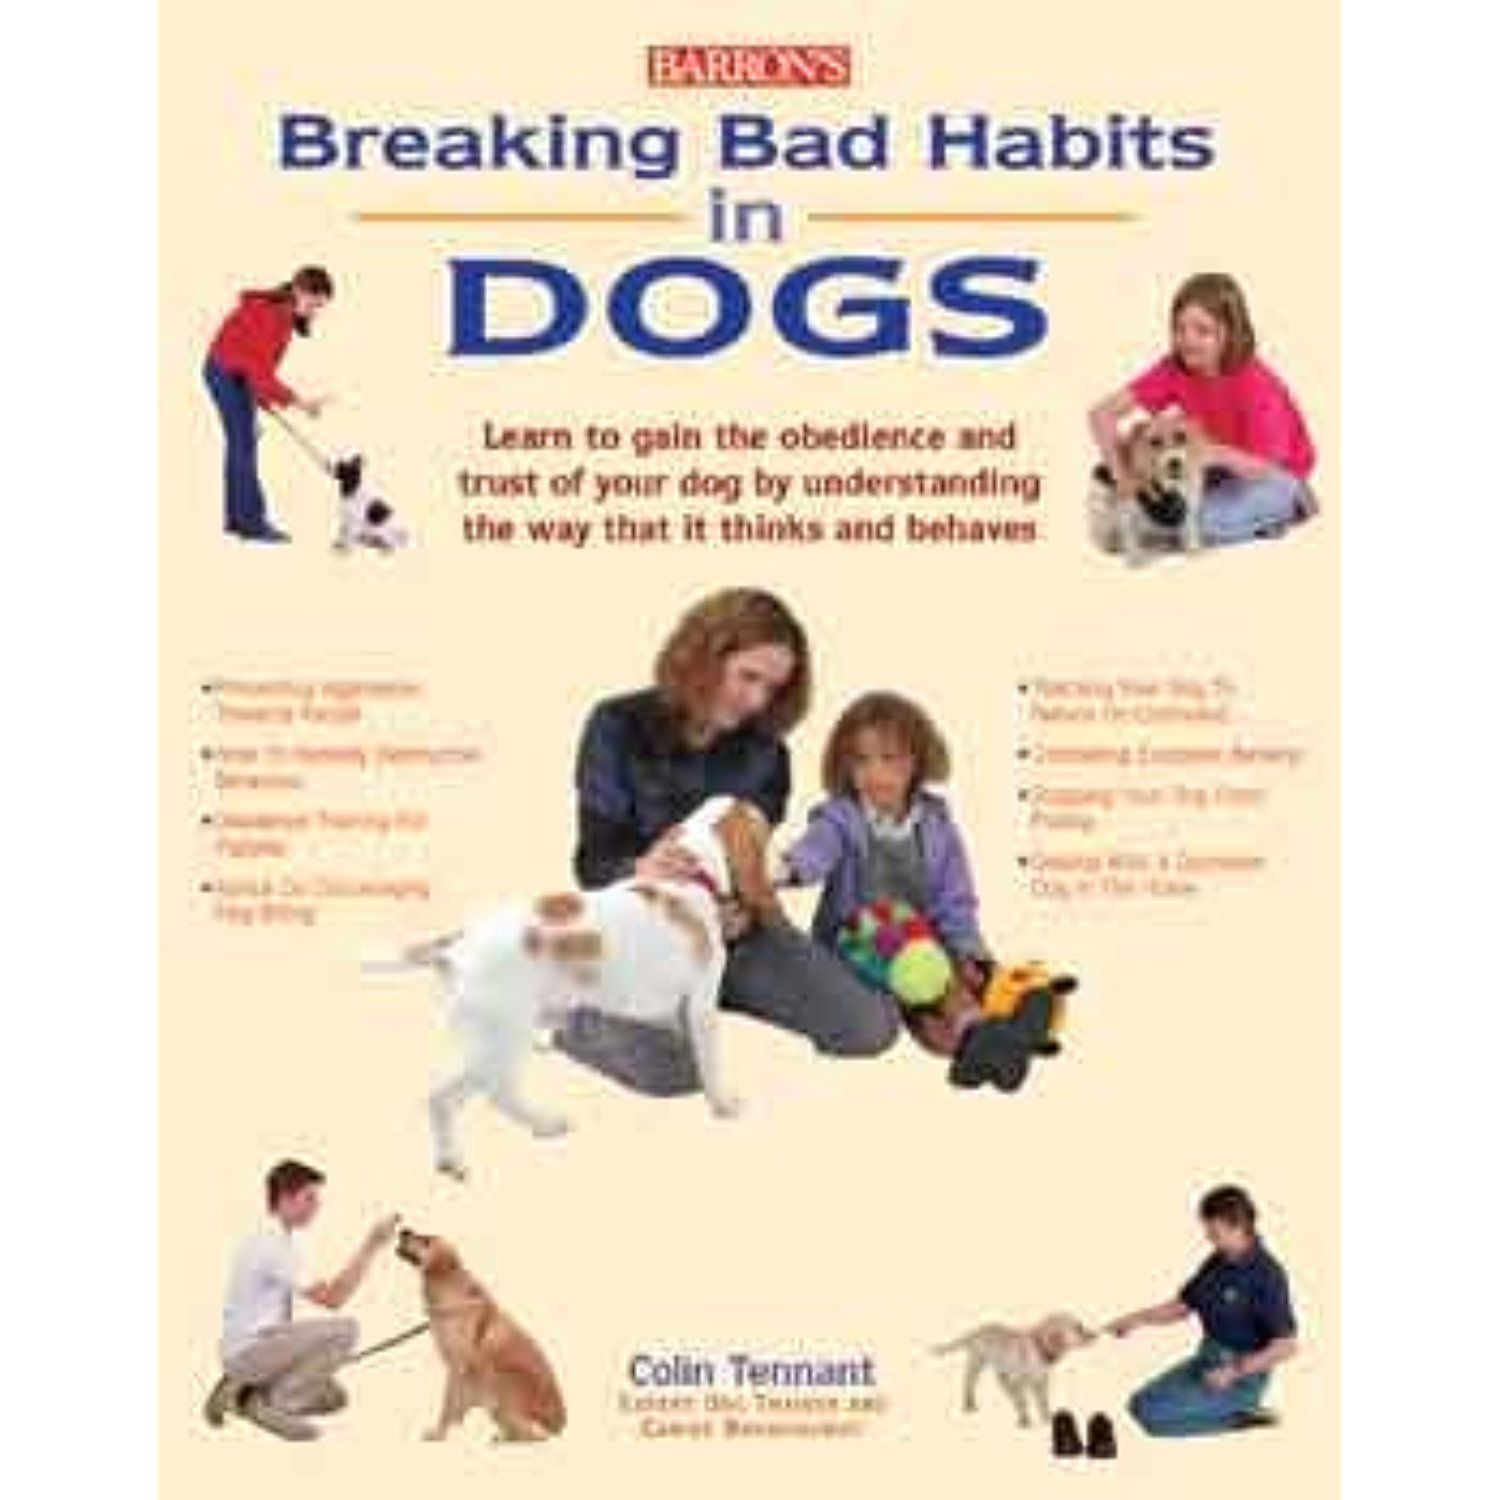 Barrons Books Breaking Bad Habits In Dogs The Details Can Be